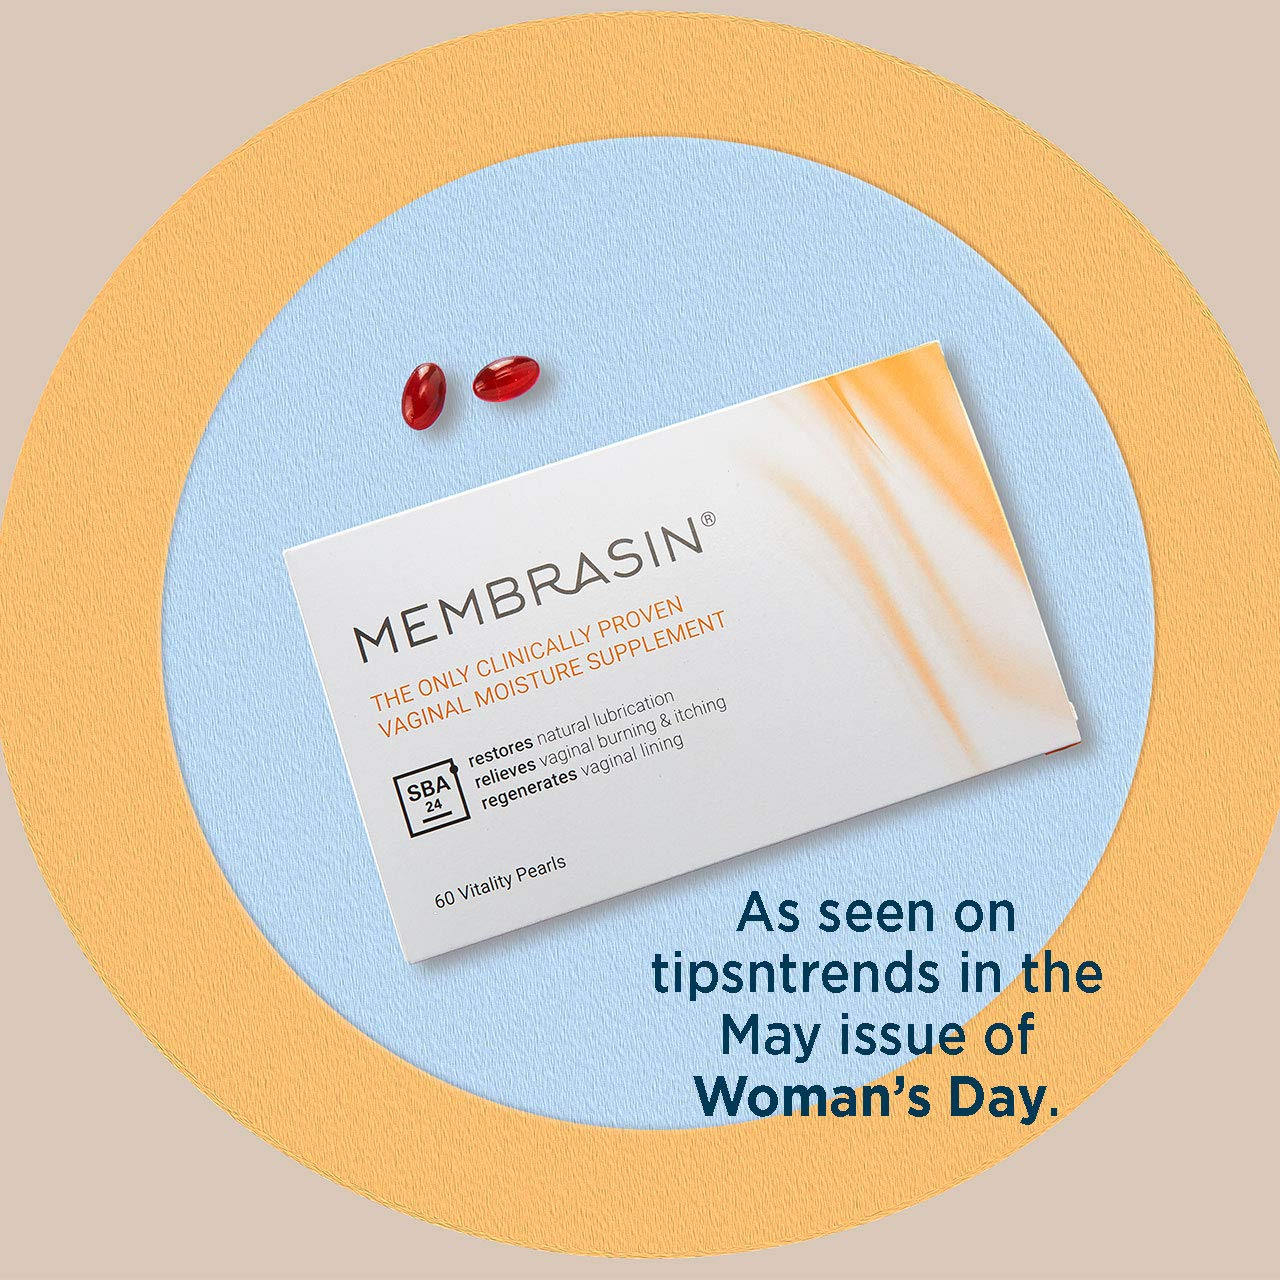 Membrasin Feminine Moisturizer Supplement for Dryness - 100% Natural Daily Take Orally Clinically Proven to Help Restore Moisture - Relieves Dry Feminine Area Burning & Itching for Women & Menopause : Beauty